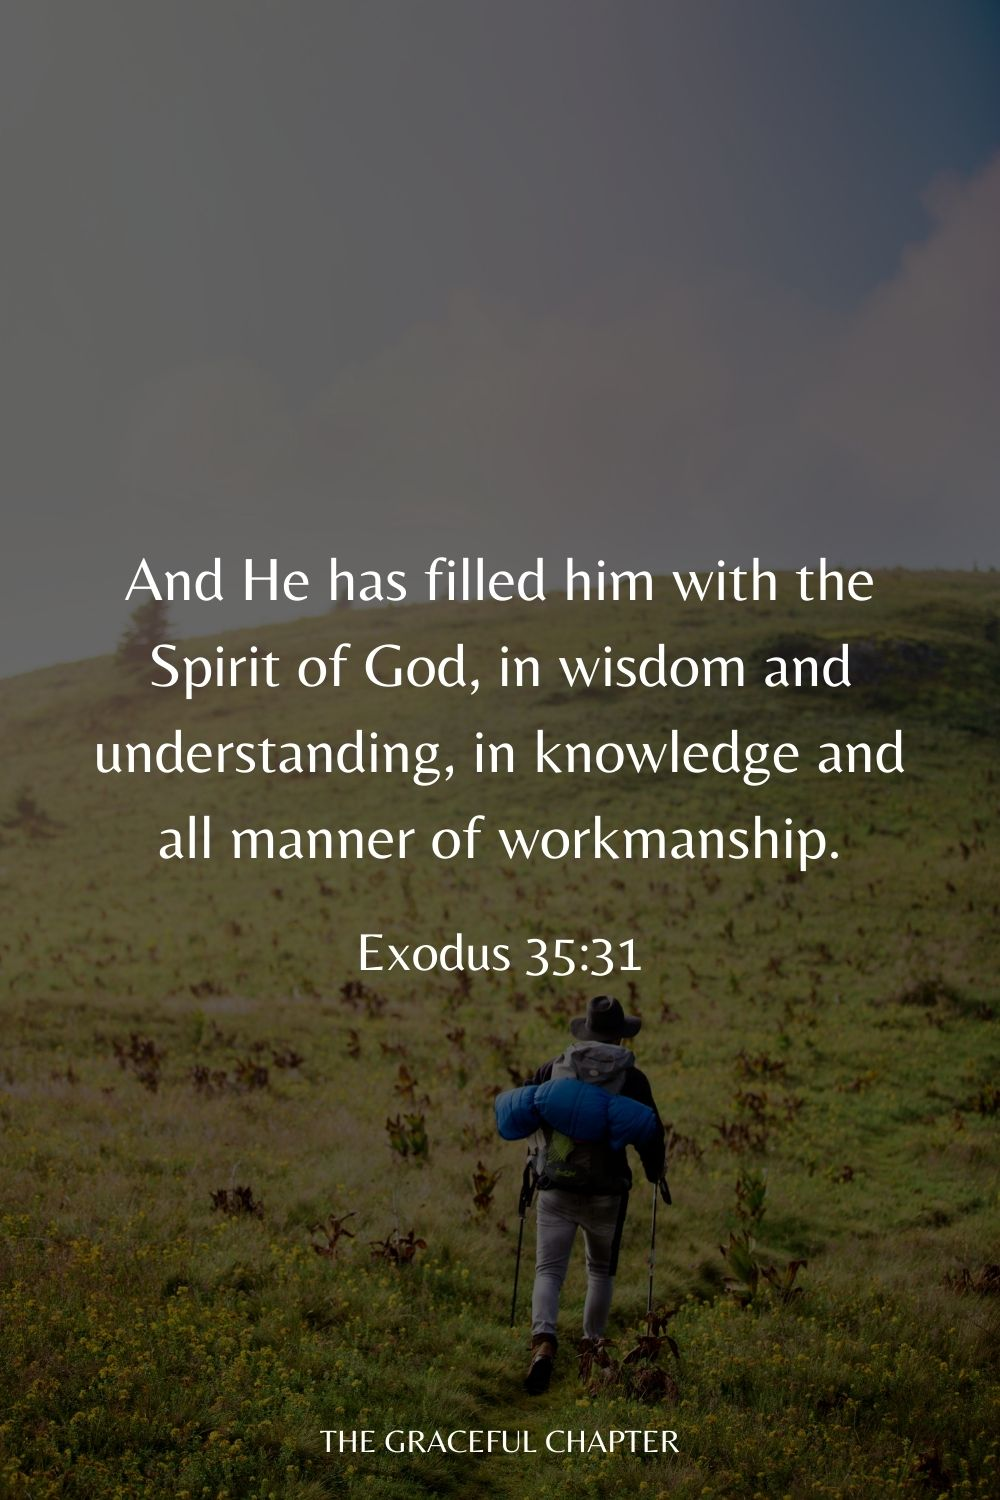 And He has filled him with the Spirit of God, in wisdom and understanding, in knowledge and all manner of workmanship. Exodus 35:31